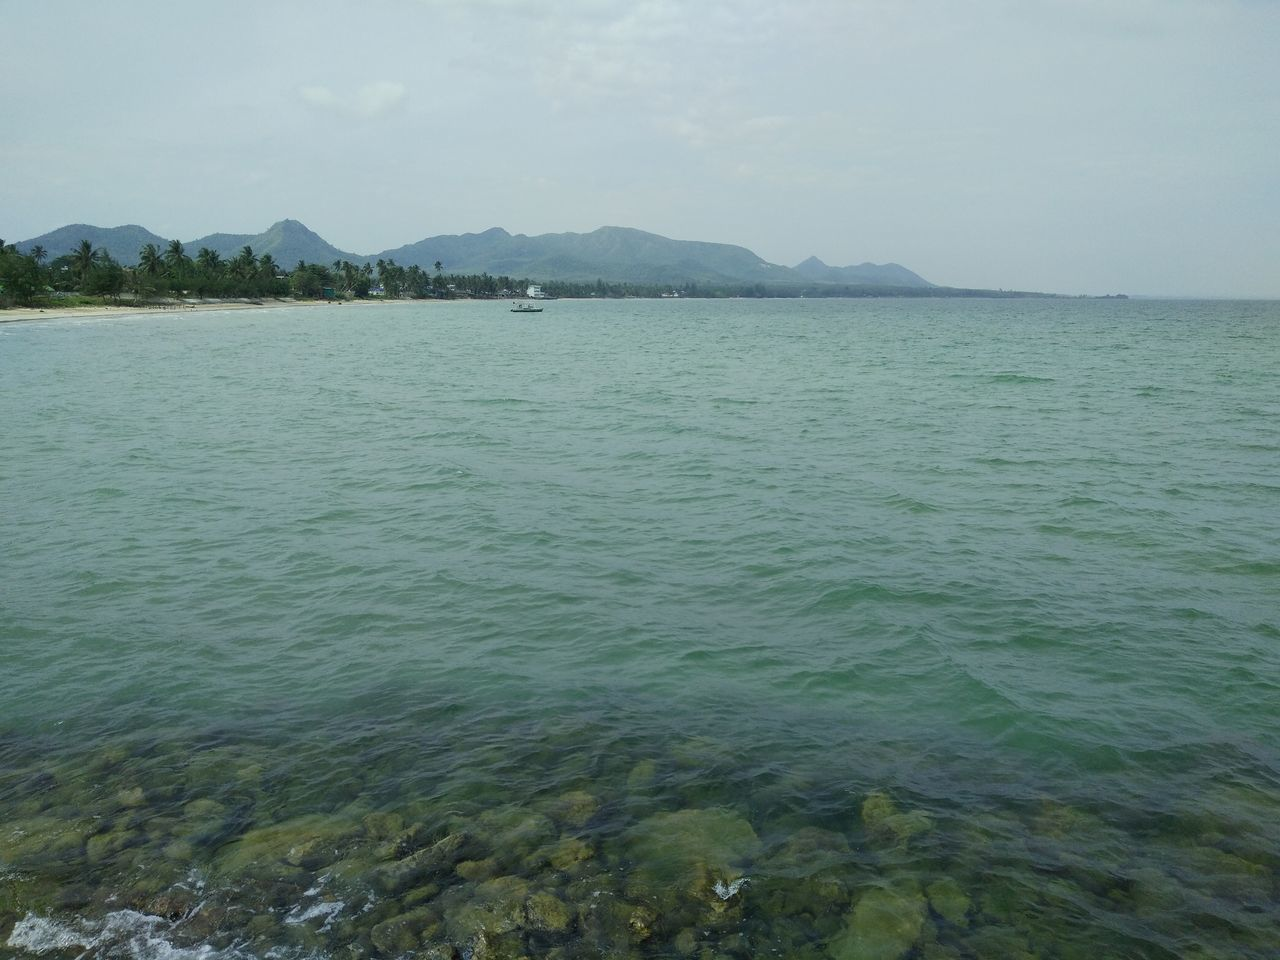 nature, scenics, beauty in nature, sea, water, tranquility, mountain, tranquil scene, outdoors, sky, waterfront, day, no people